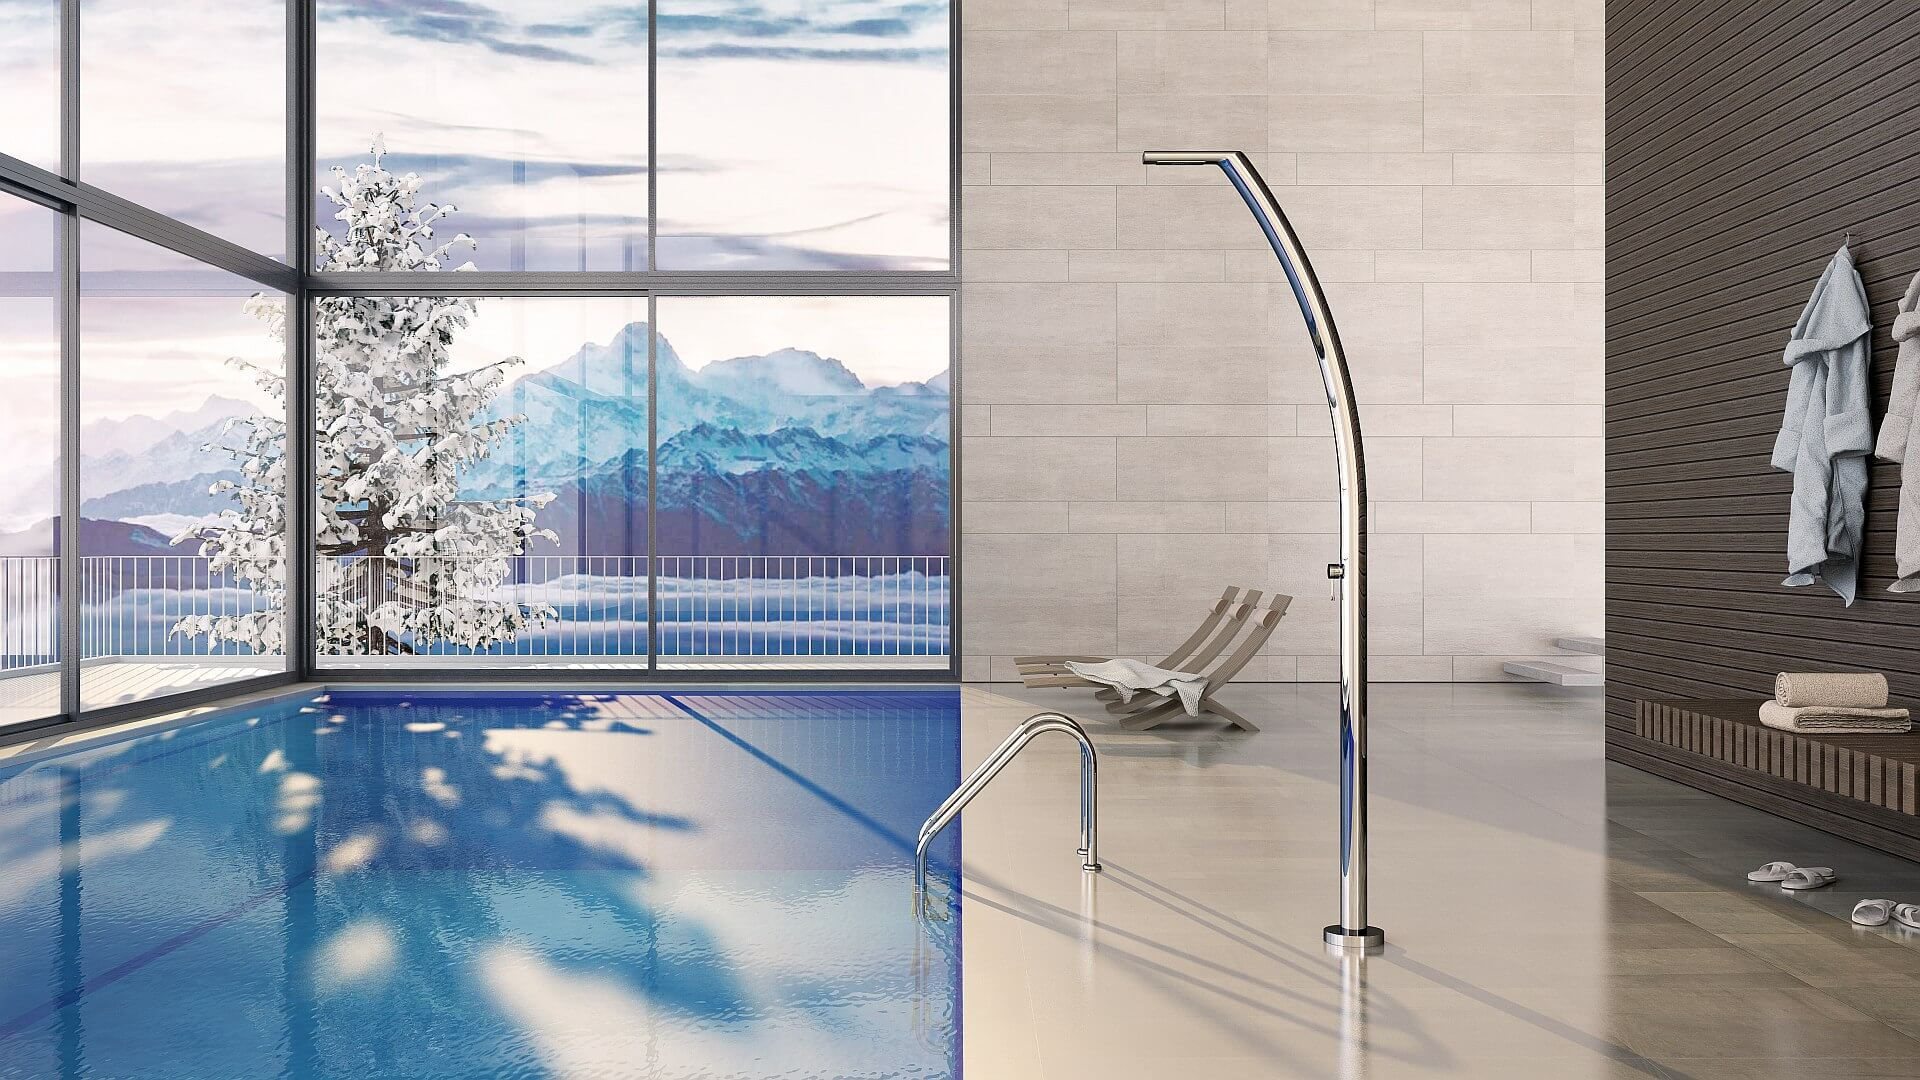 Picture Outdoor shower, pool, garden - Yacht Inoxstyle